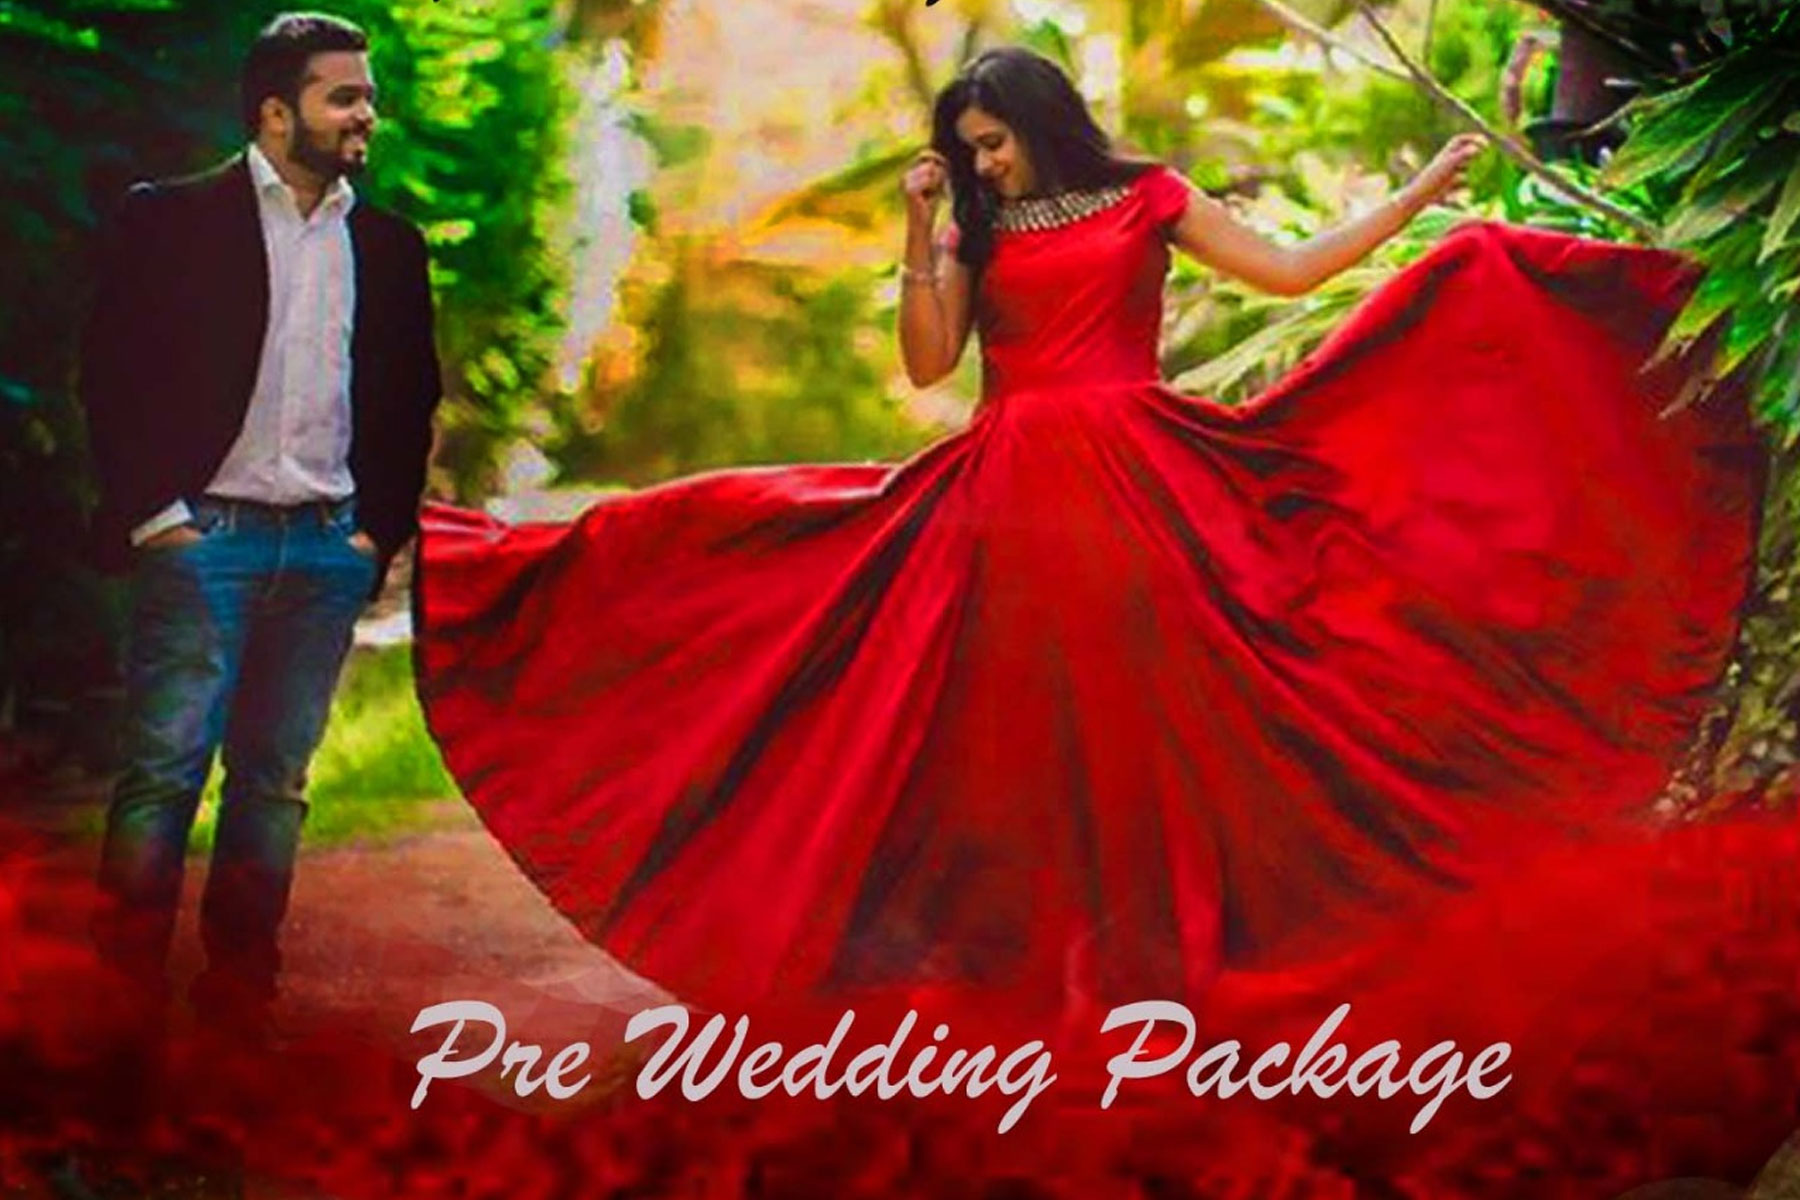 Pre Wedding Package